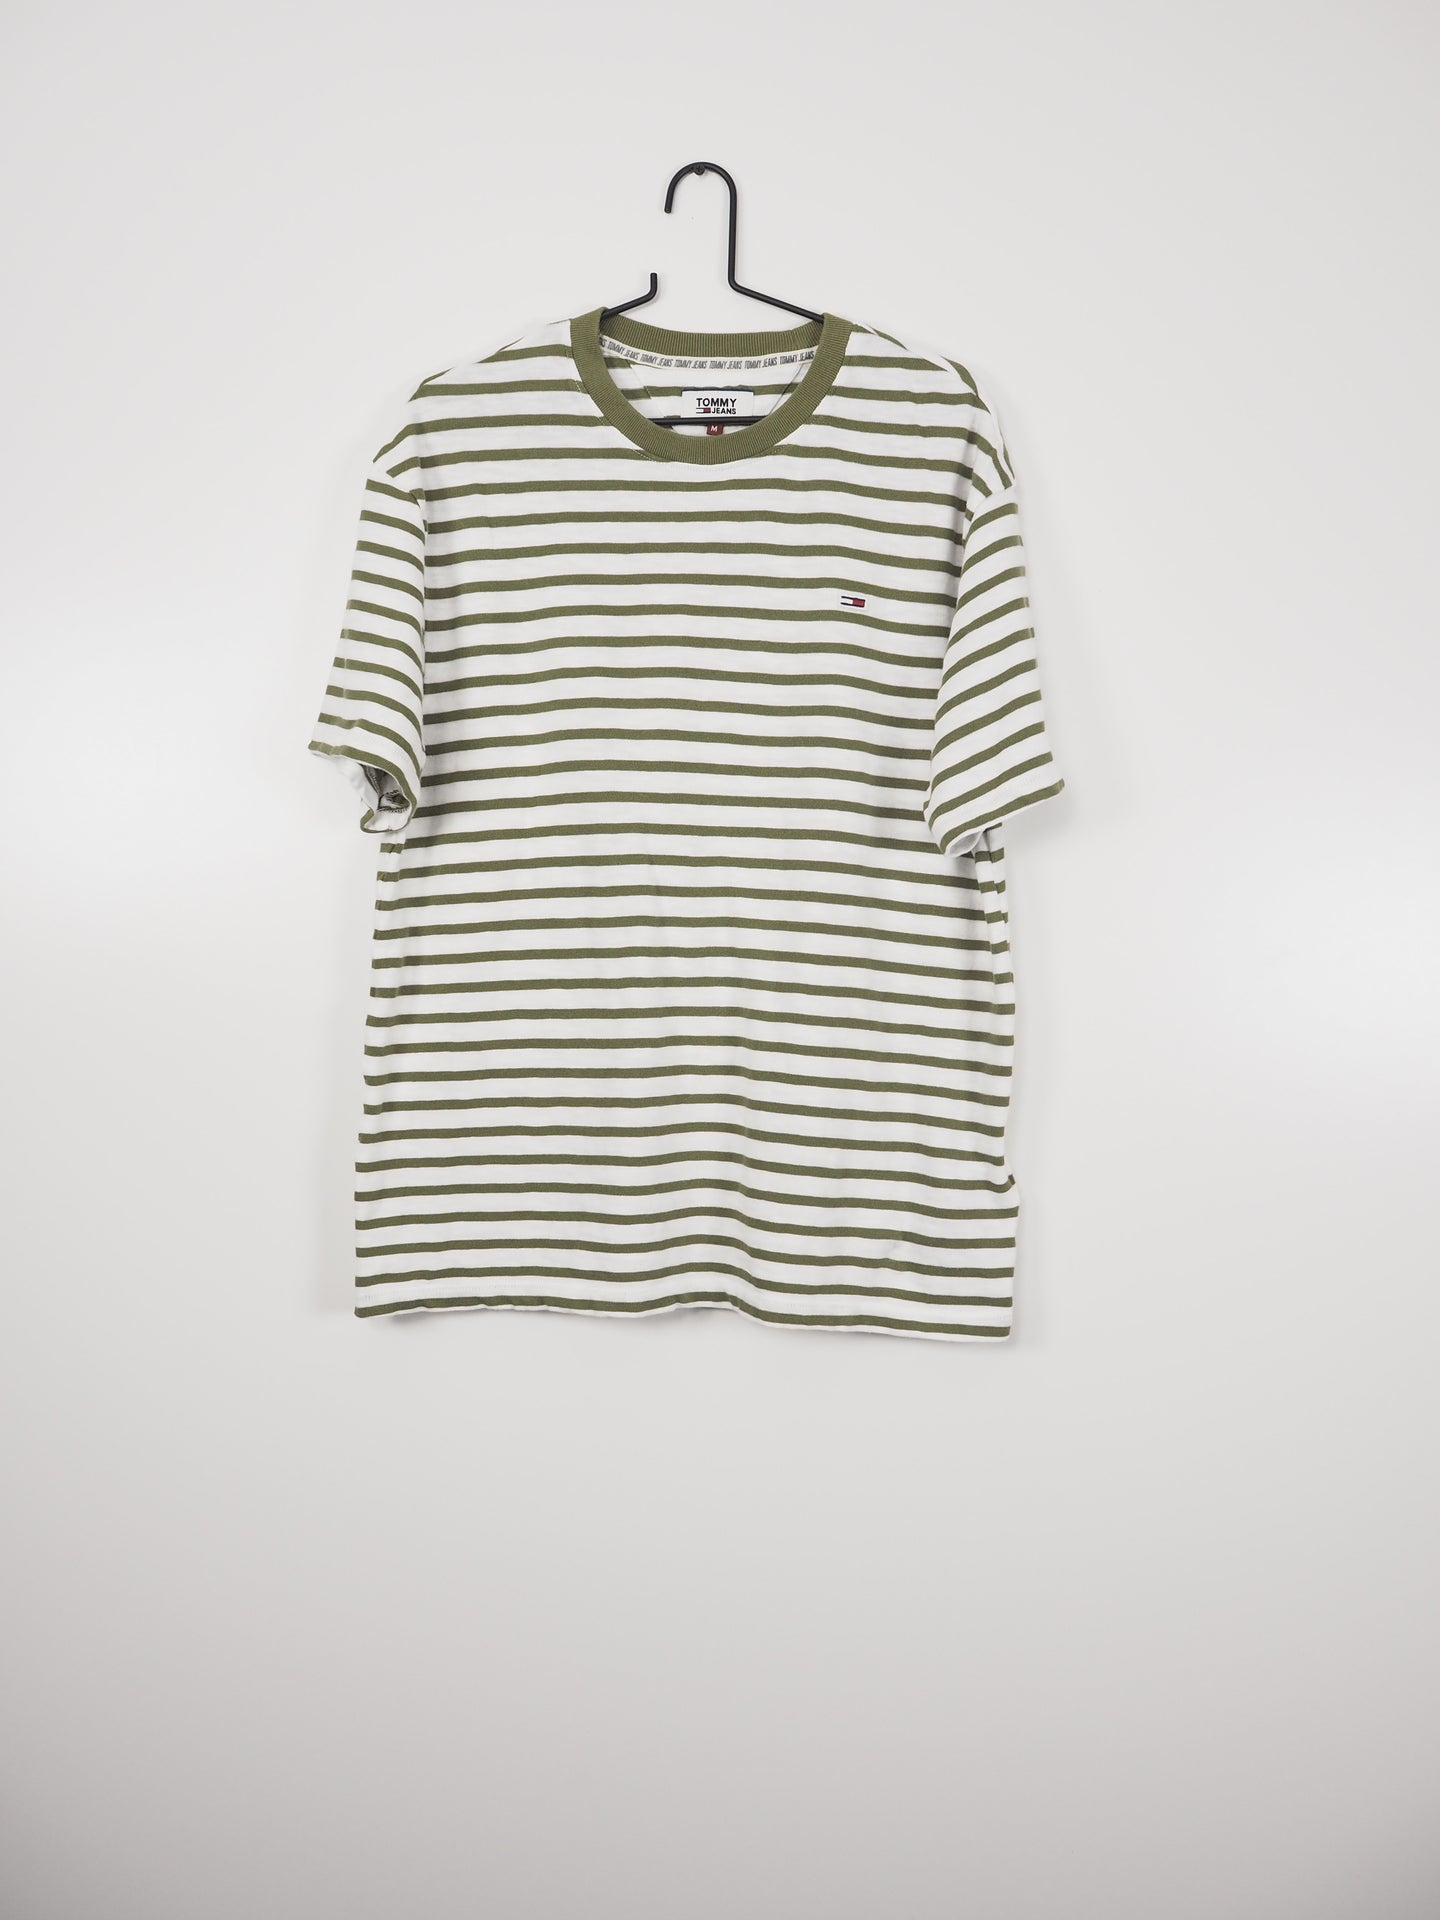 Tommy striped T-shirt (Tommy Hilfiger)